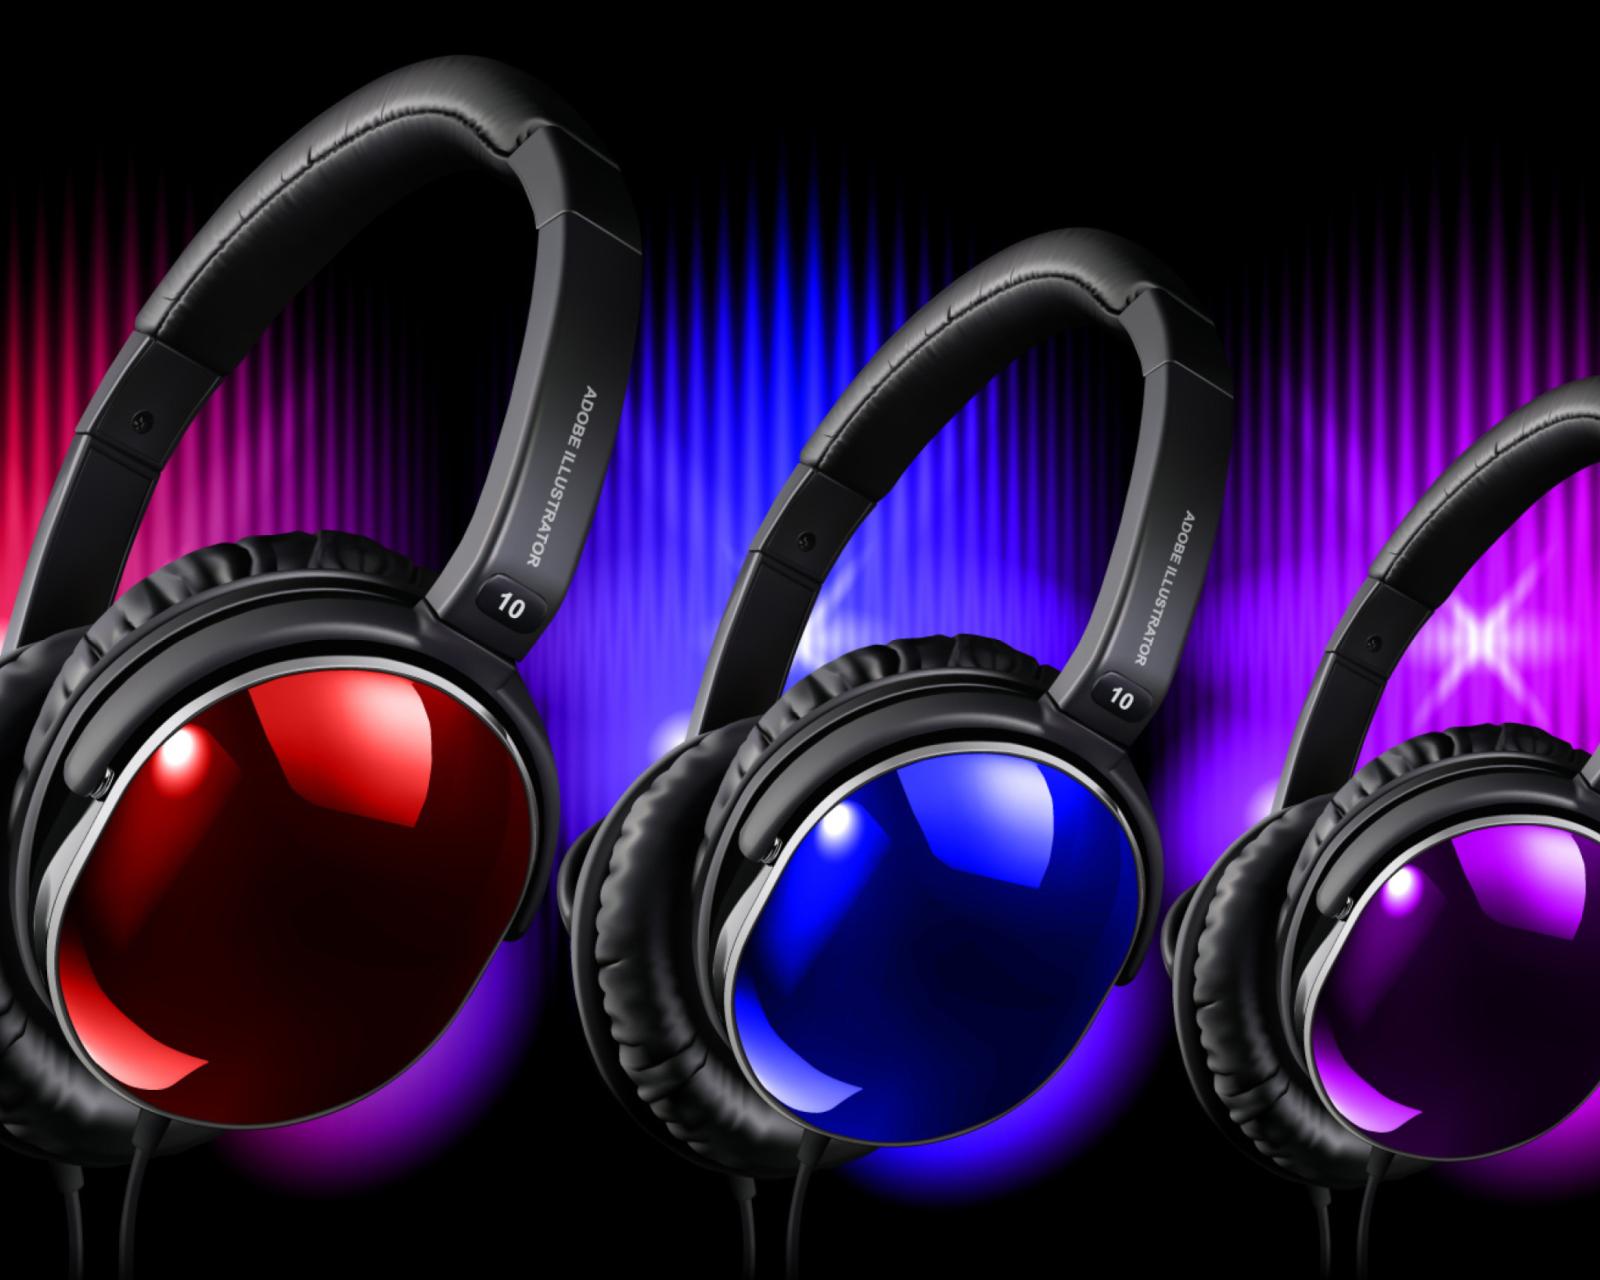 Colorful Headphones wallpaper 1600x1280